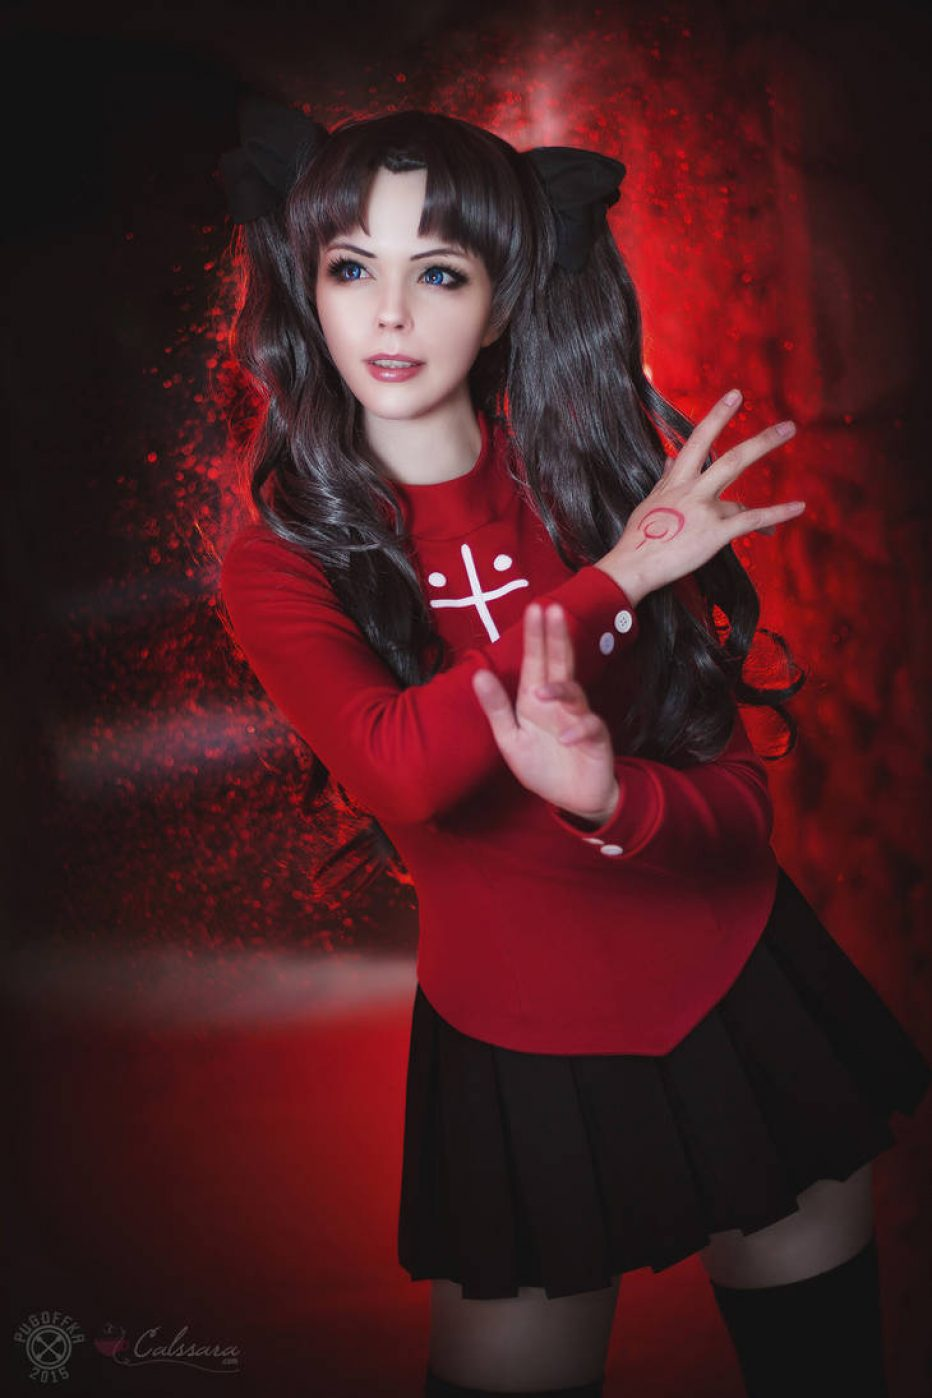 Fate-Stay-Night-Rin-Tohsaka-Cosplay-Gamers-Heroes-1.jpg